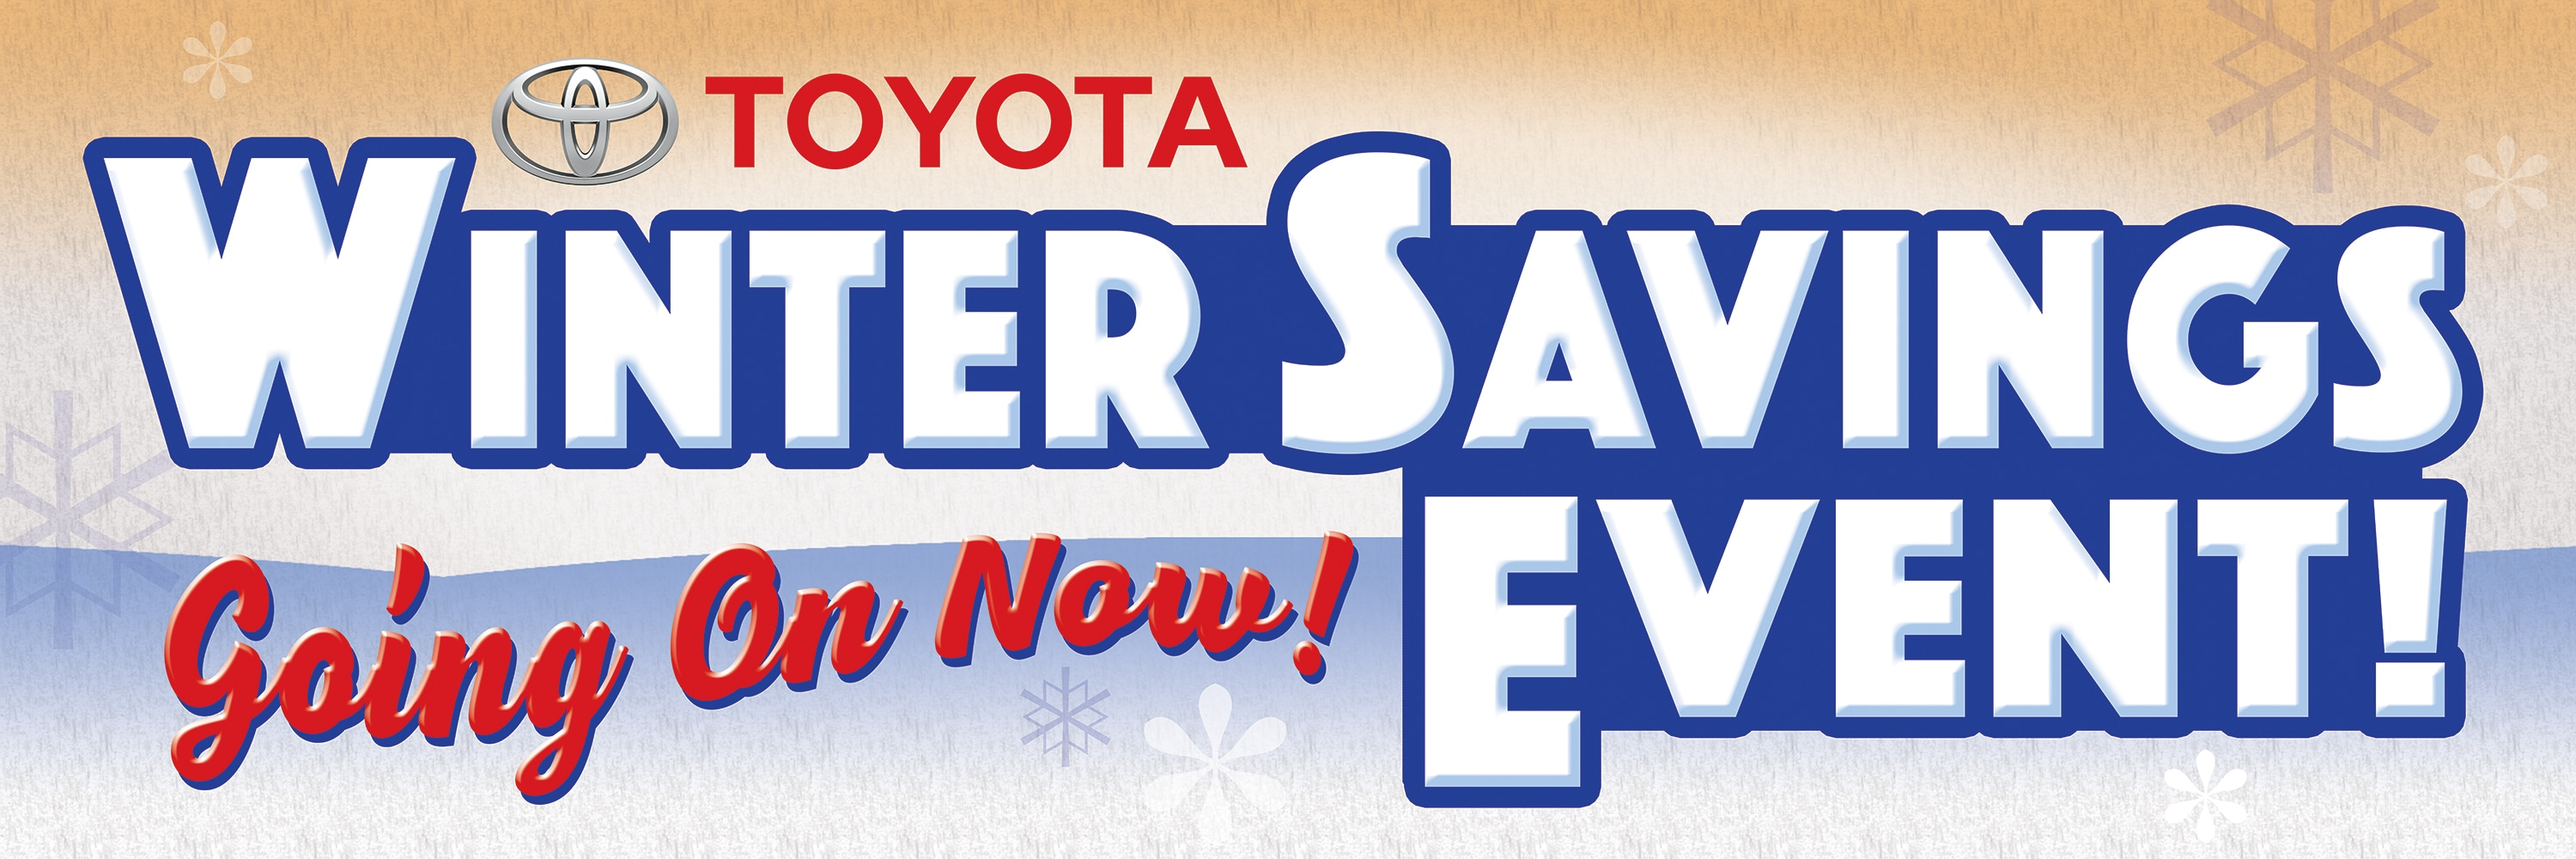 Toyota Winter Savings Event